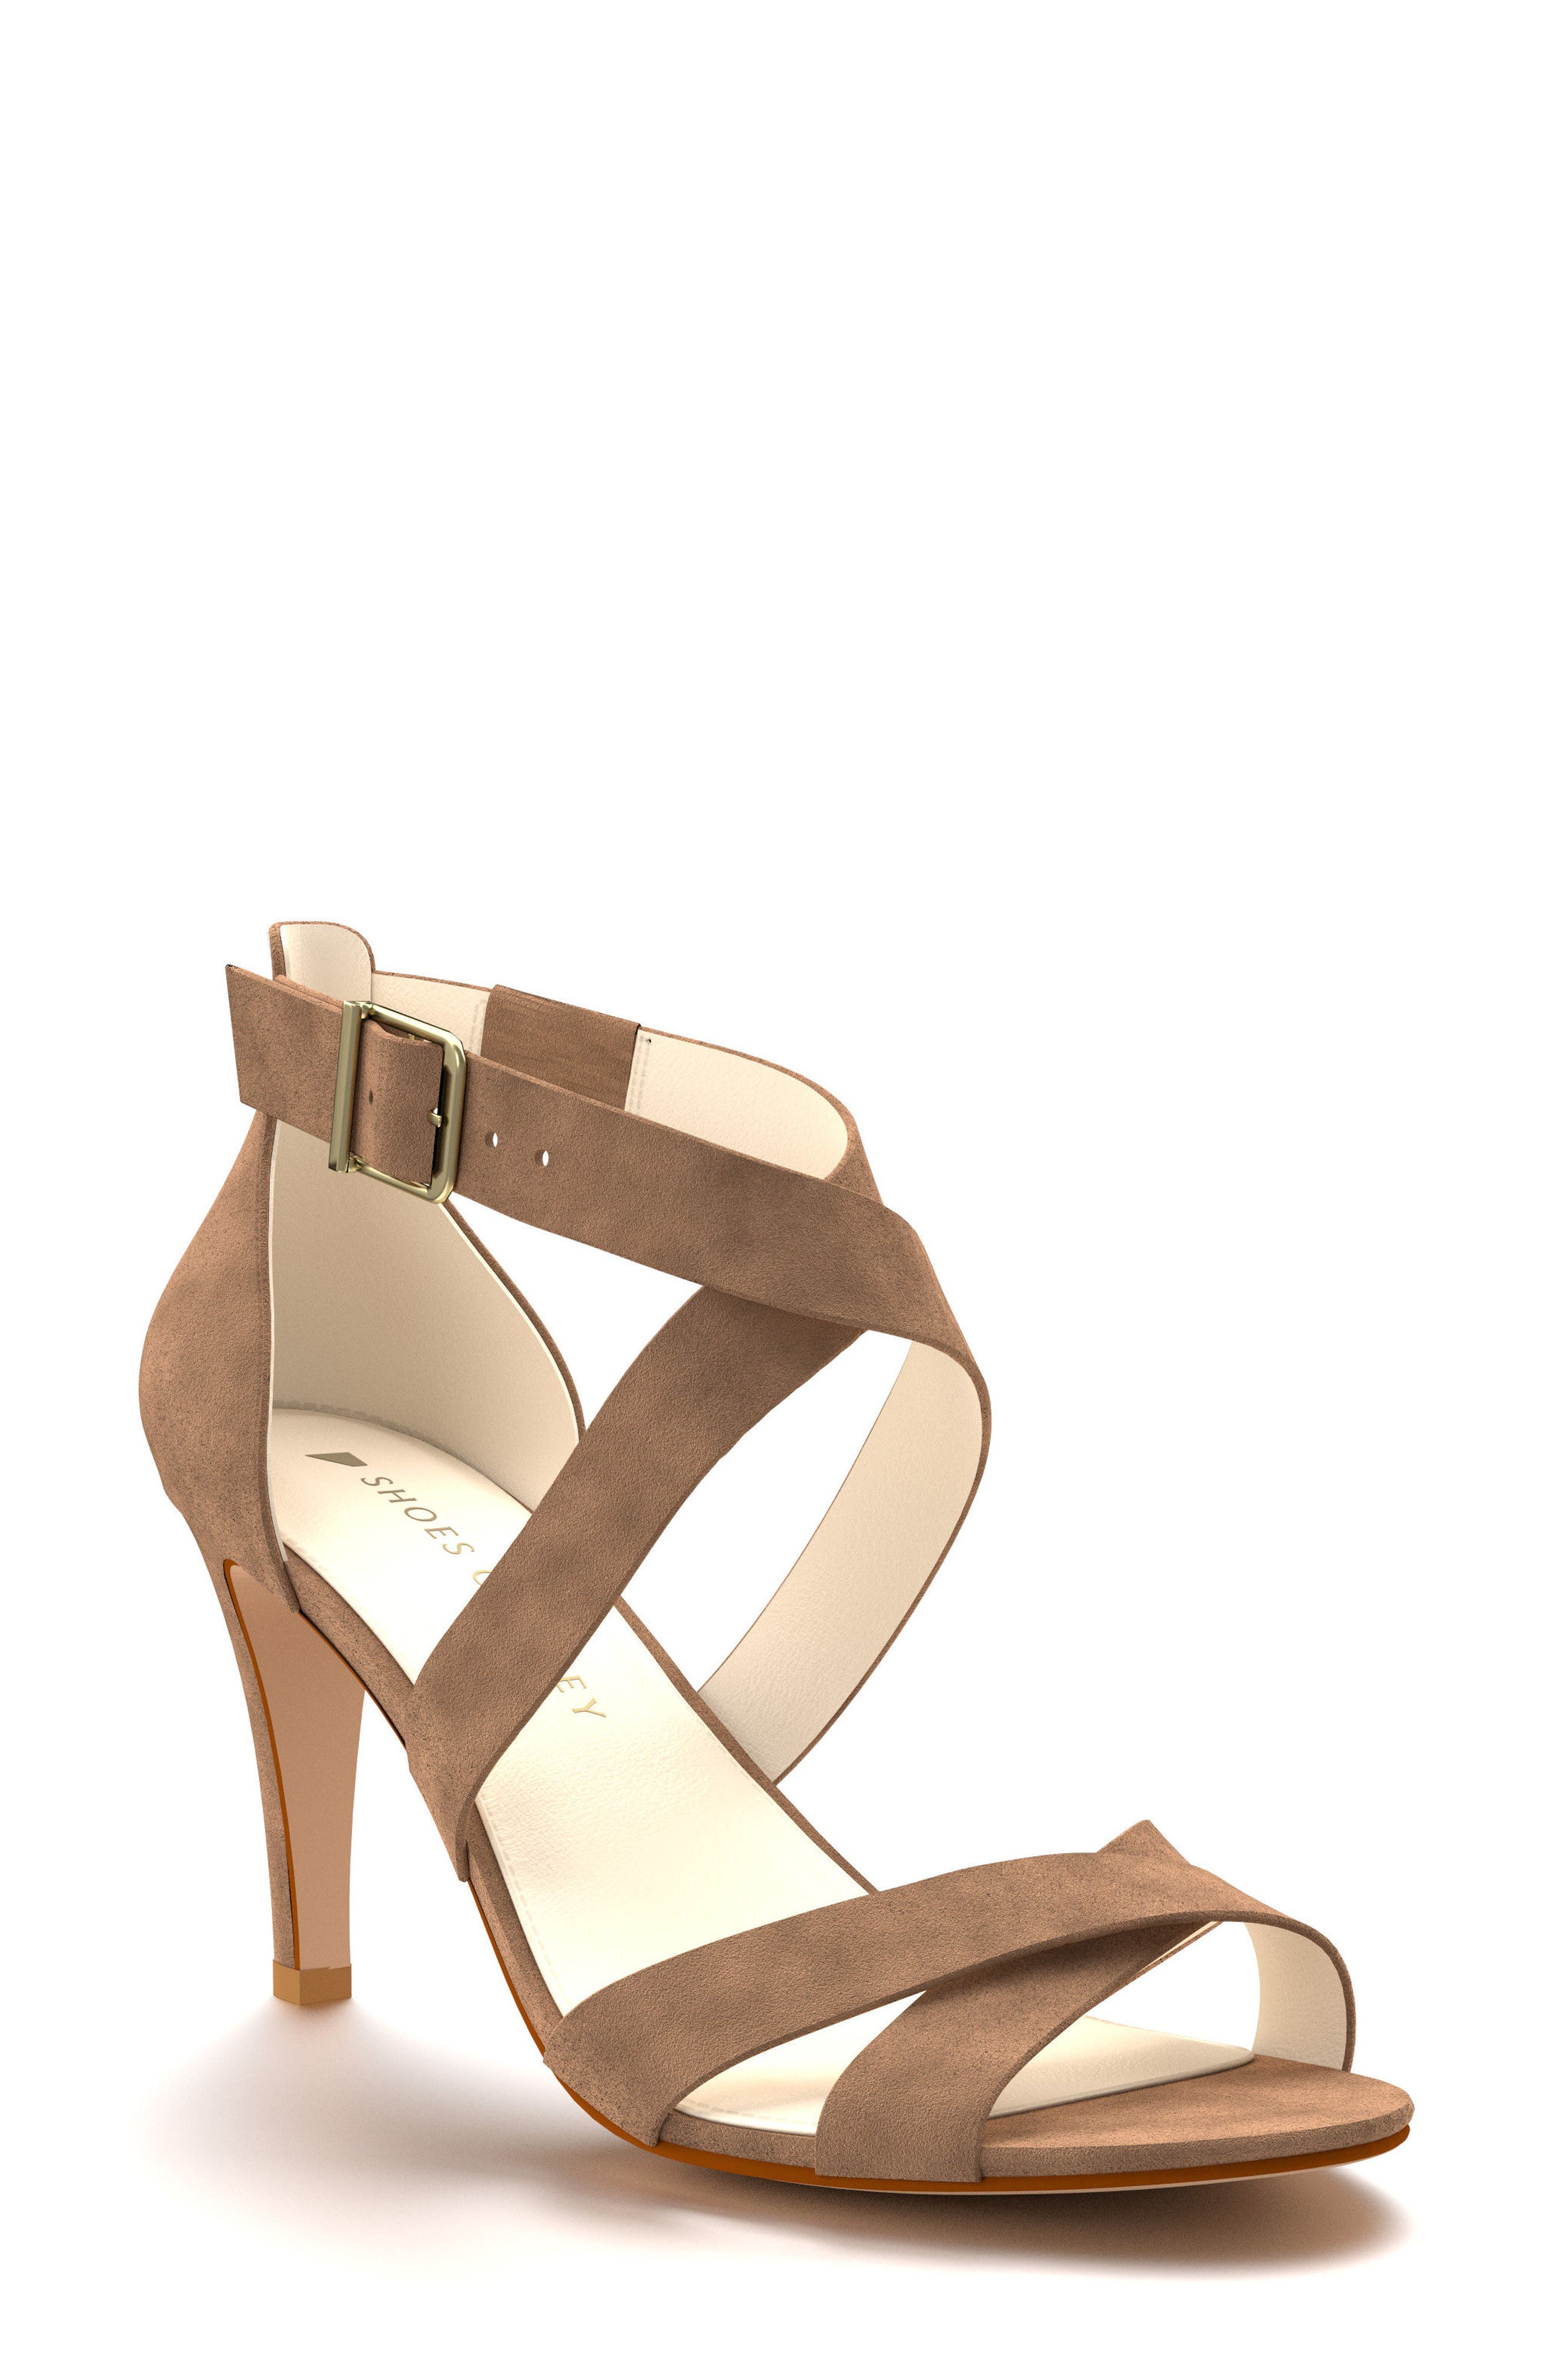 Shoes of Prey Crisscross Strappy Sandal (Women)